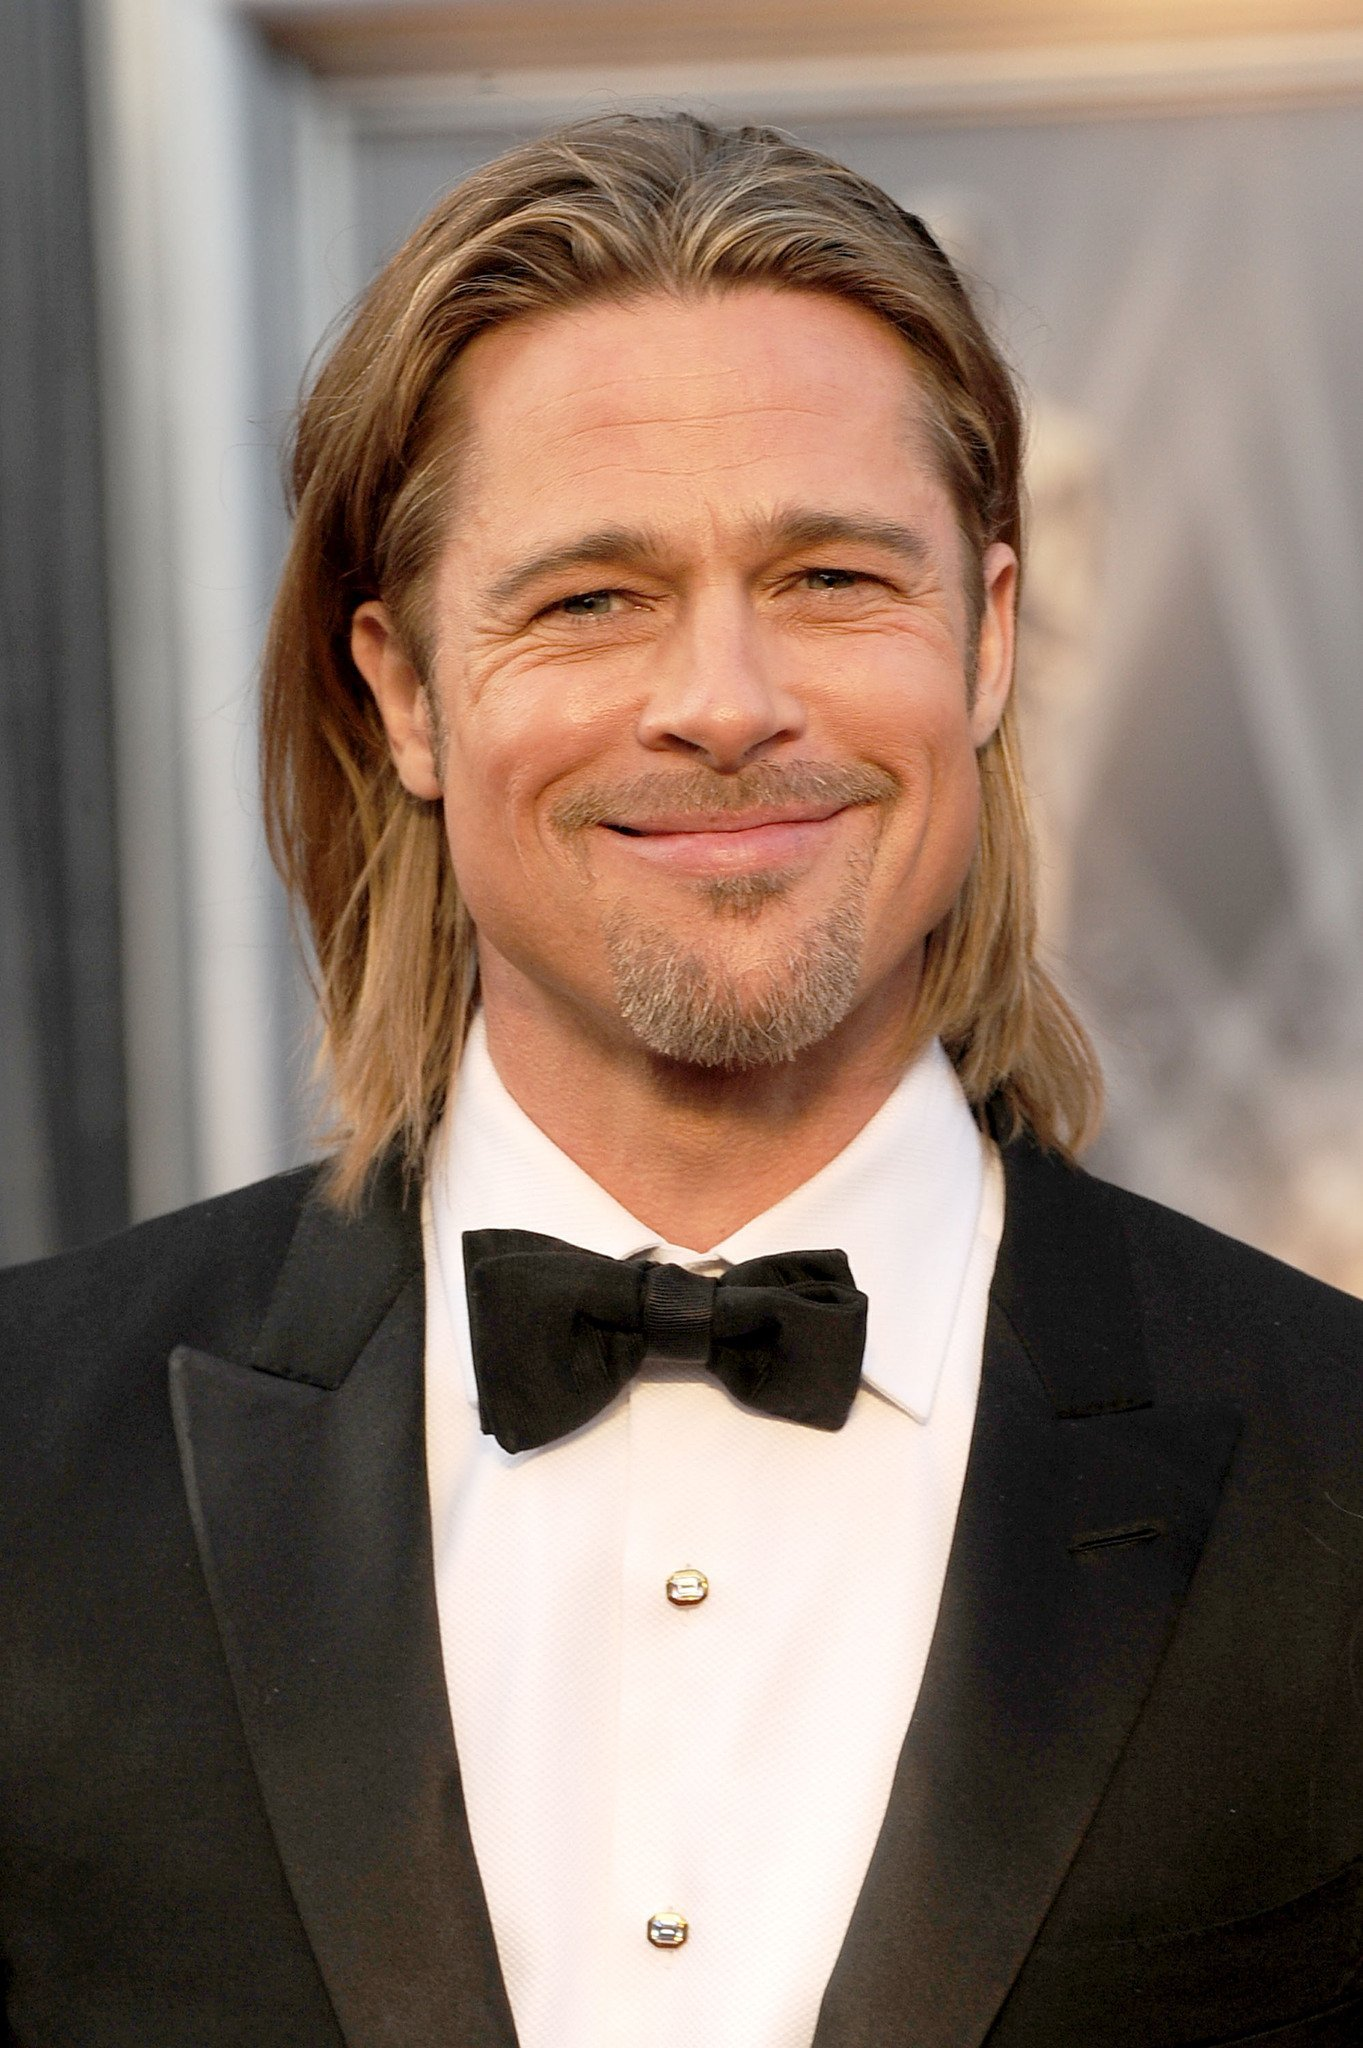 FANS NOTICED SOMETHING STRANGE ABOUT ALMOST ALL OF BRAD PITT'S MOVIES